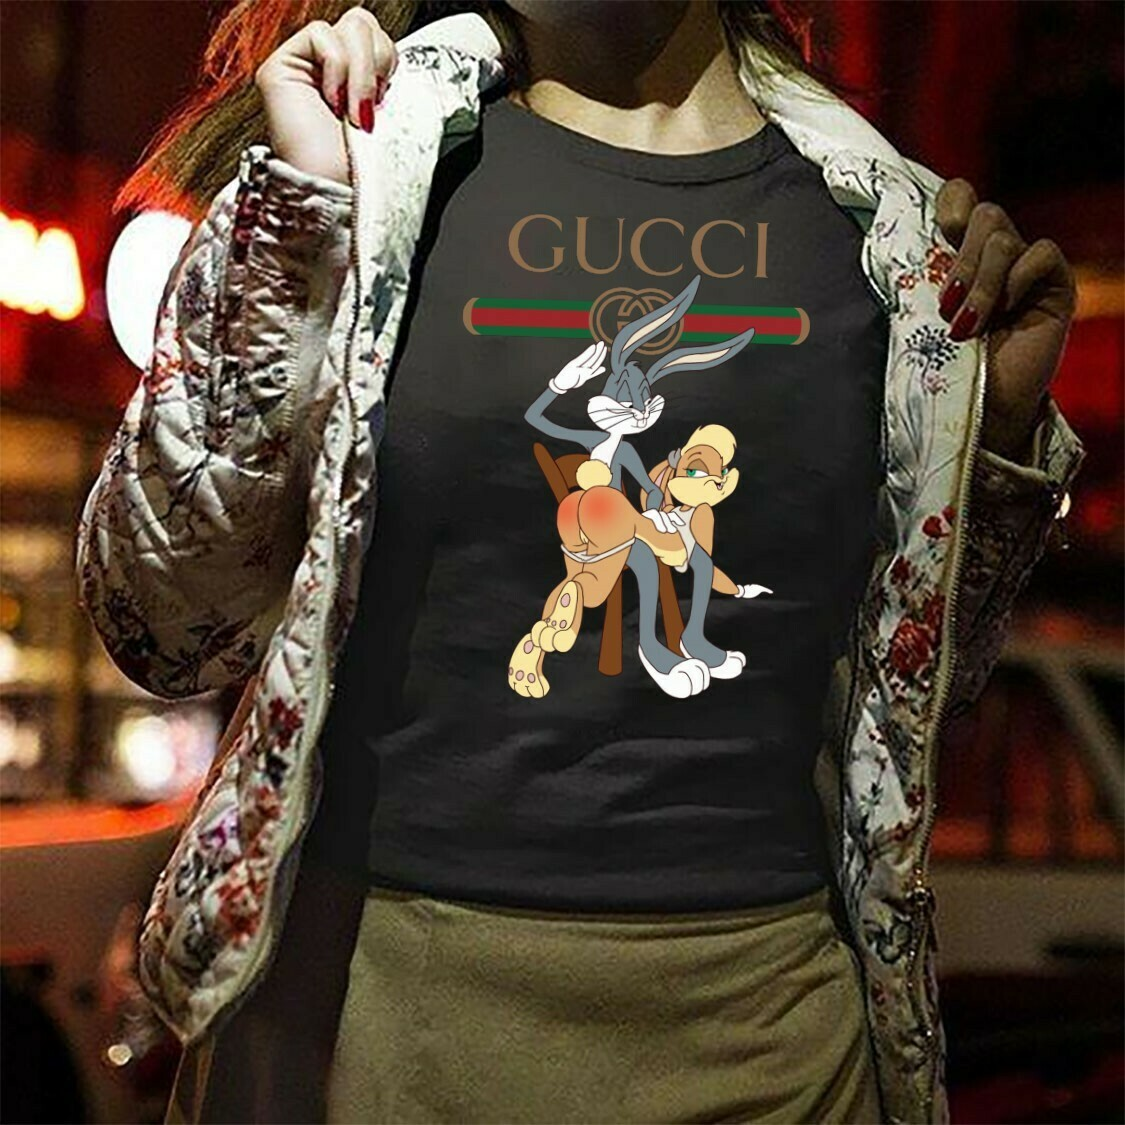 Bunny rabbit,Logo Gucci,Gucci Shirt,Gucci T-shirt,Gucci Logo,Gucci Fashion shirt,Fashion shirt,Gucci Design shirt,Snake Gucci vintage shirt Long Sleeve Sweatshirt Hoodie Jolly Family Gifts